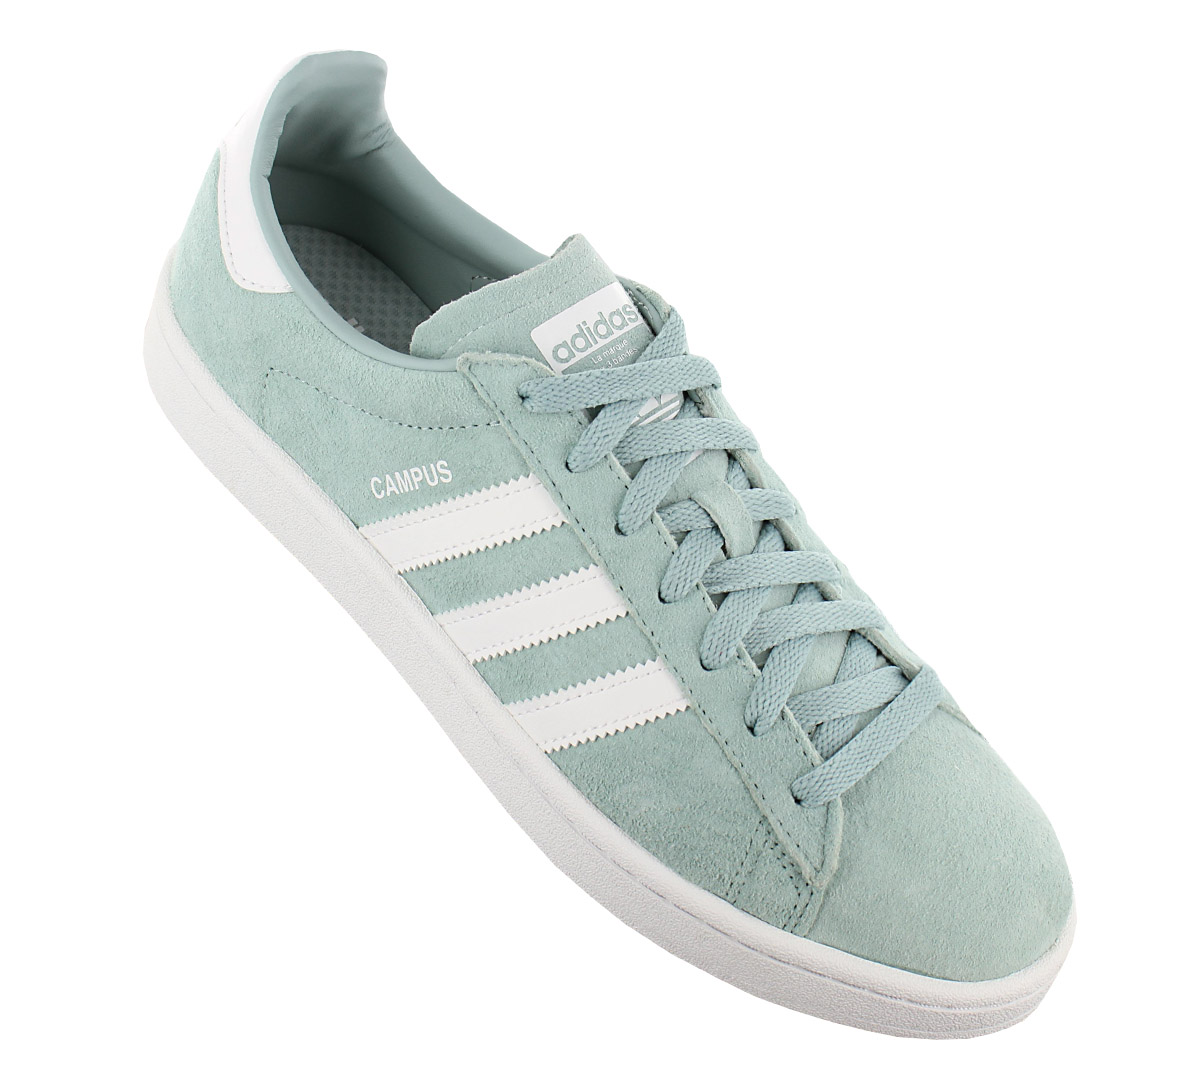 Details about Adidas Originals Campus Leather Men's Sneaker Shoes Green BZ0082 Trainers New